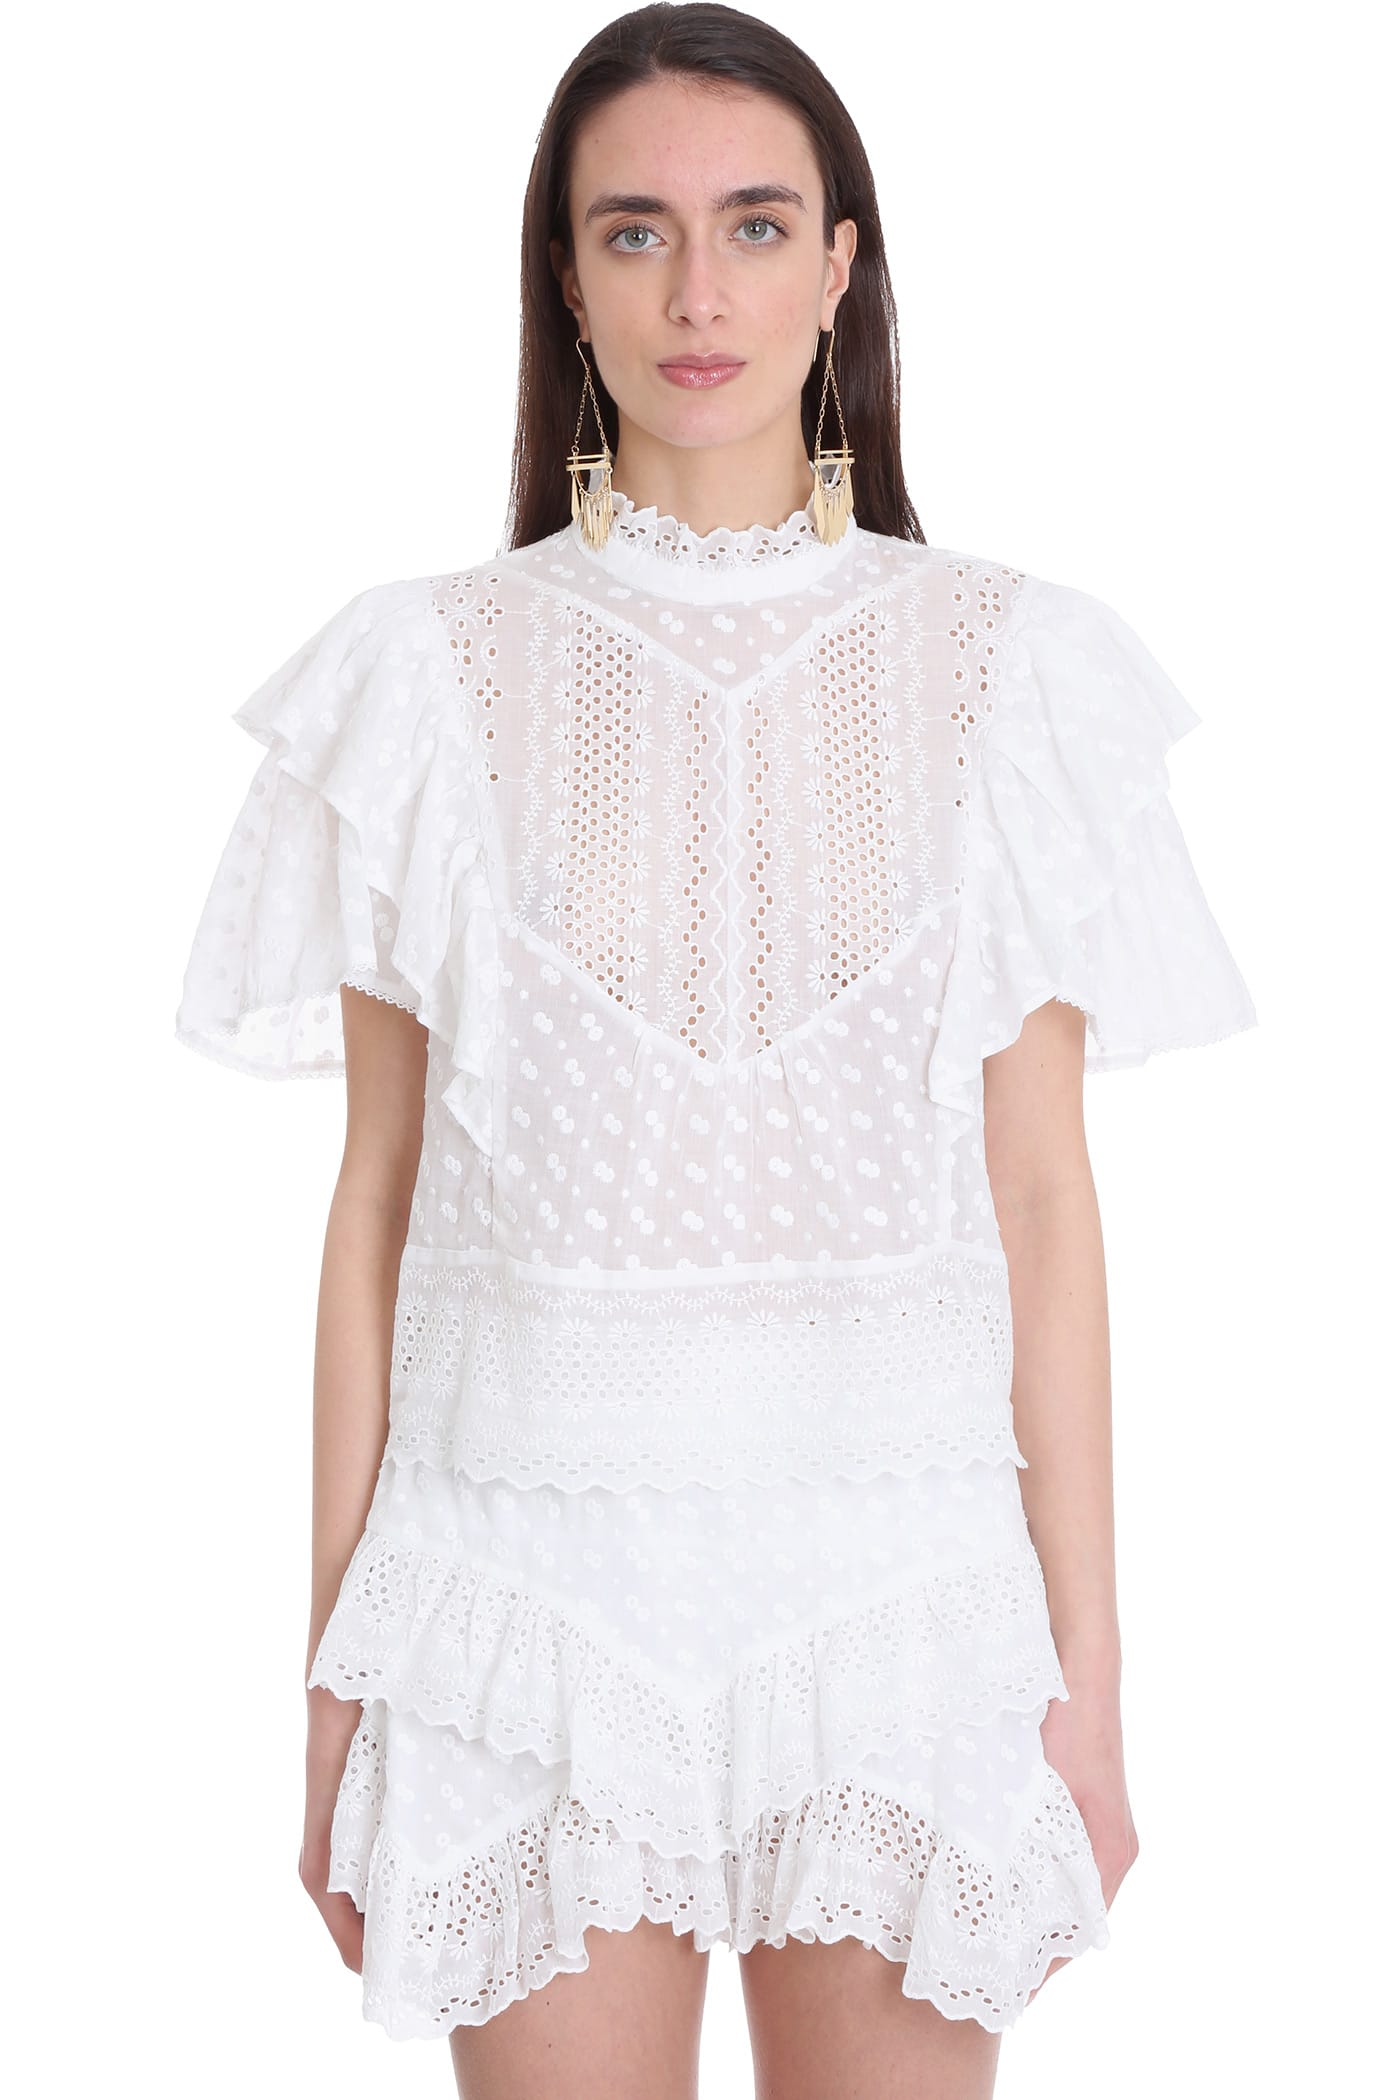 Isabel Marant Blouse In White Cotton